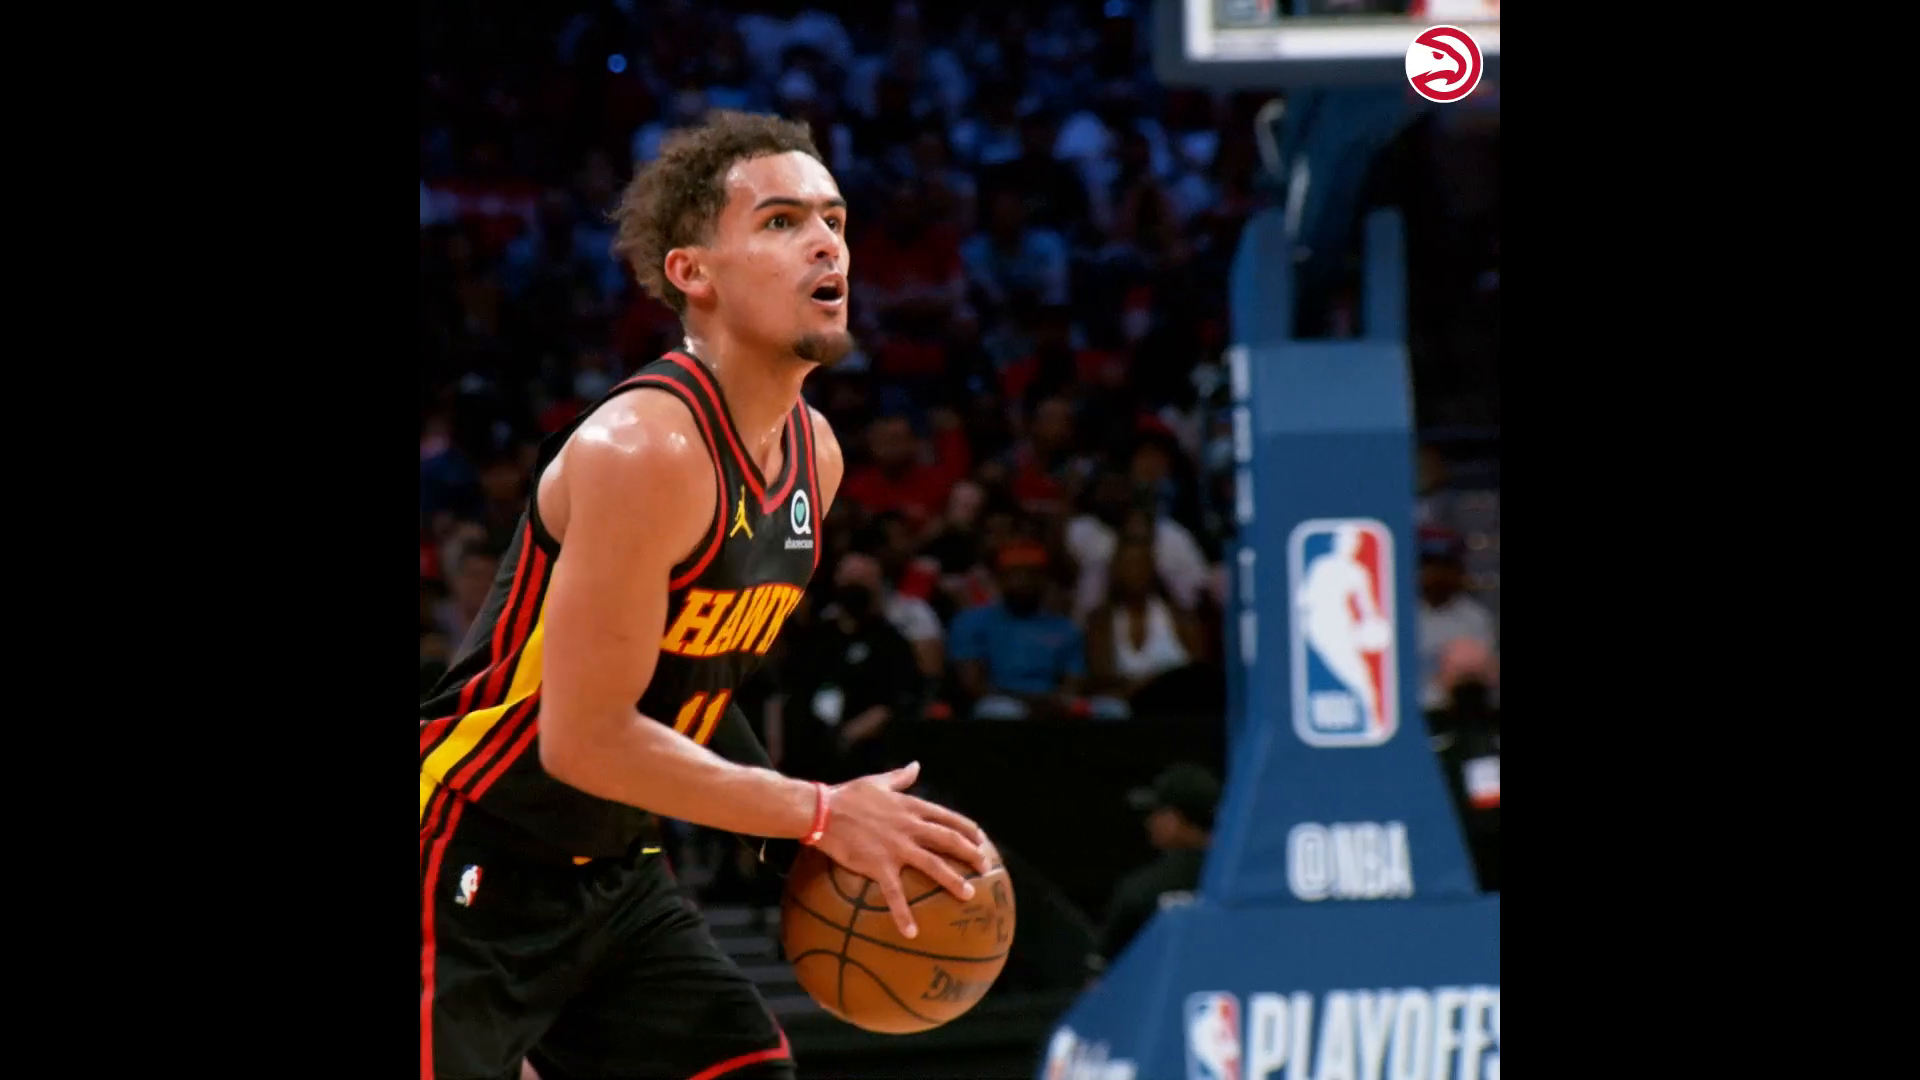 Trae Young: 20-21 Top Plays